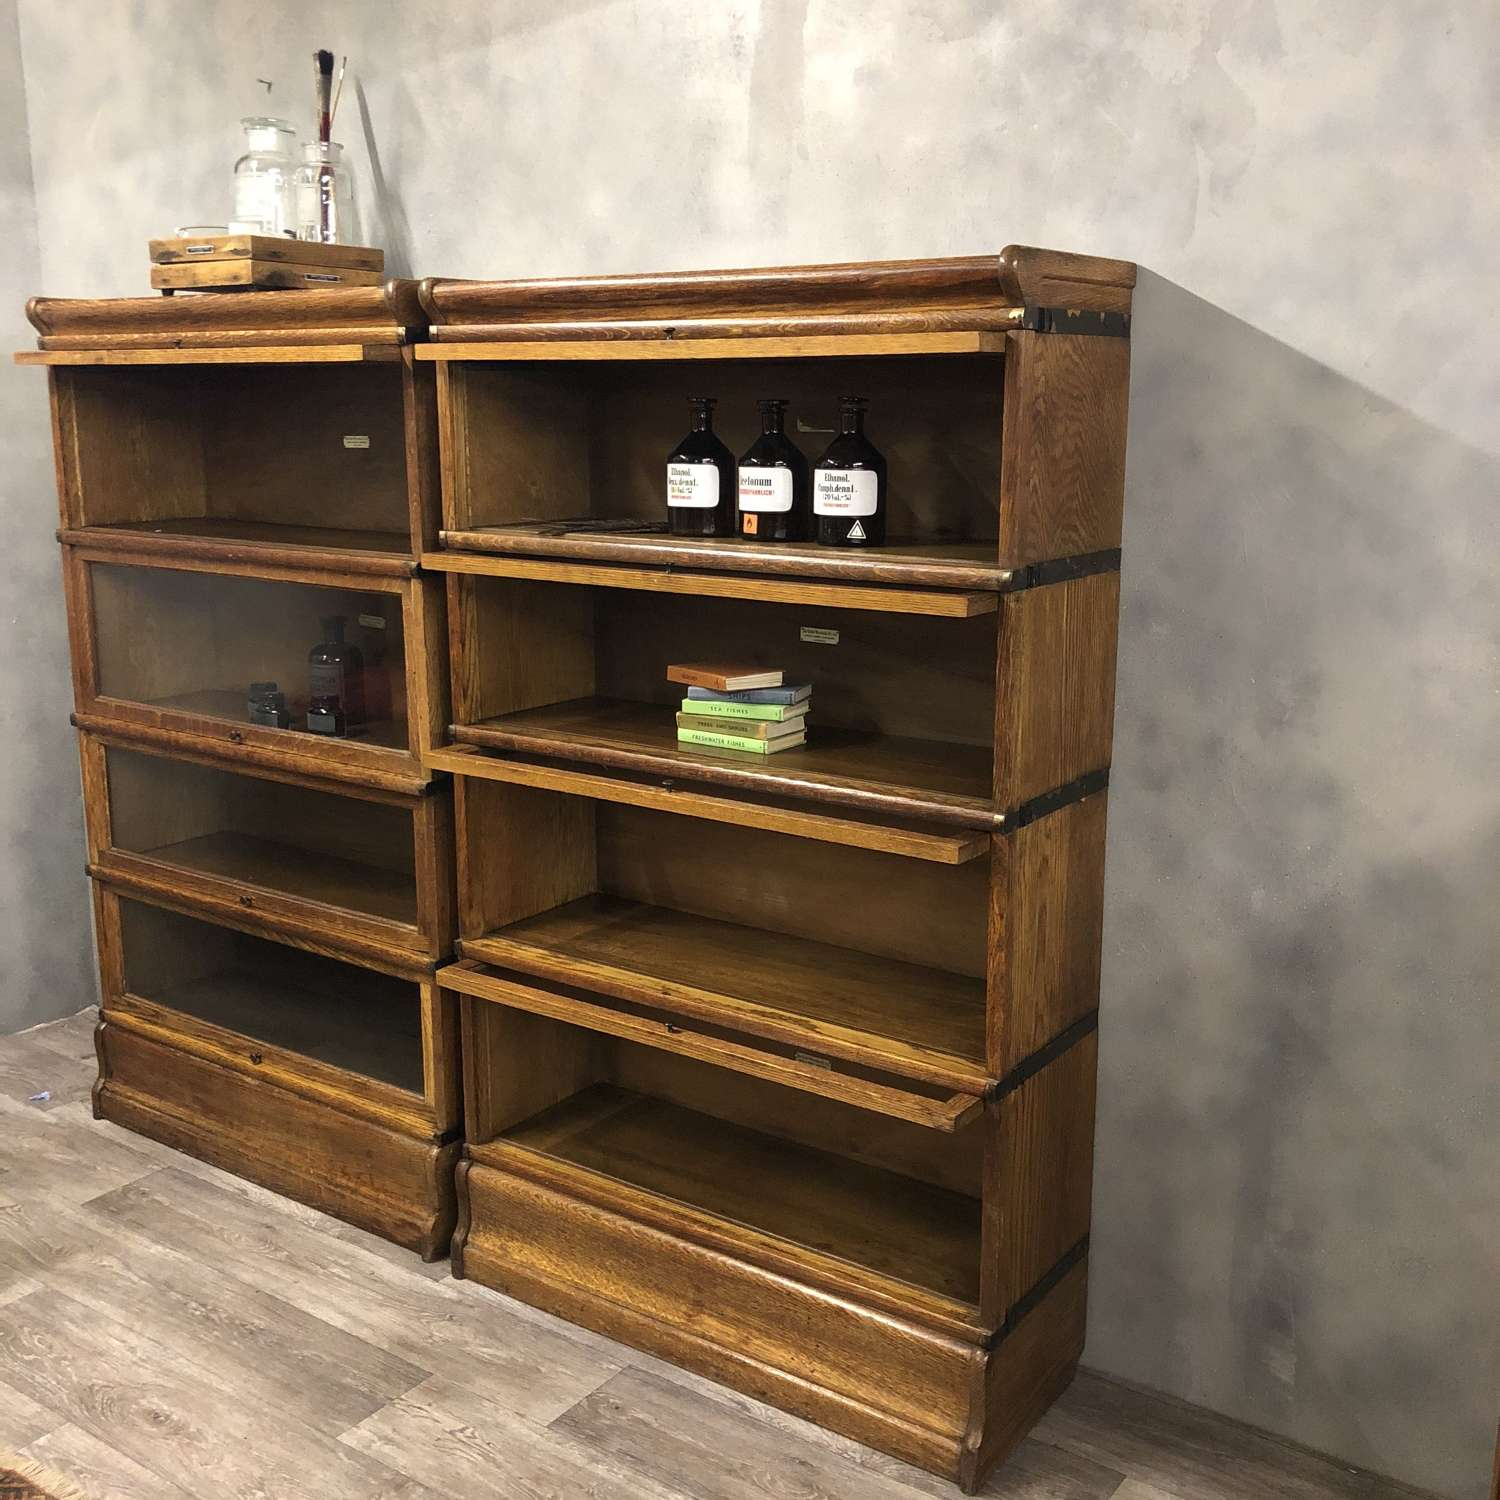 Oak Globe Wernicke stacking bookcase. 1 STACK AVAILABLE